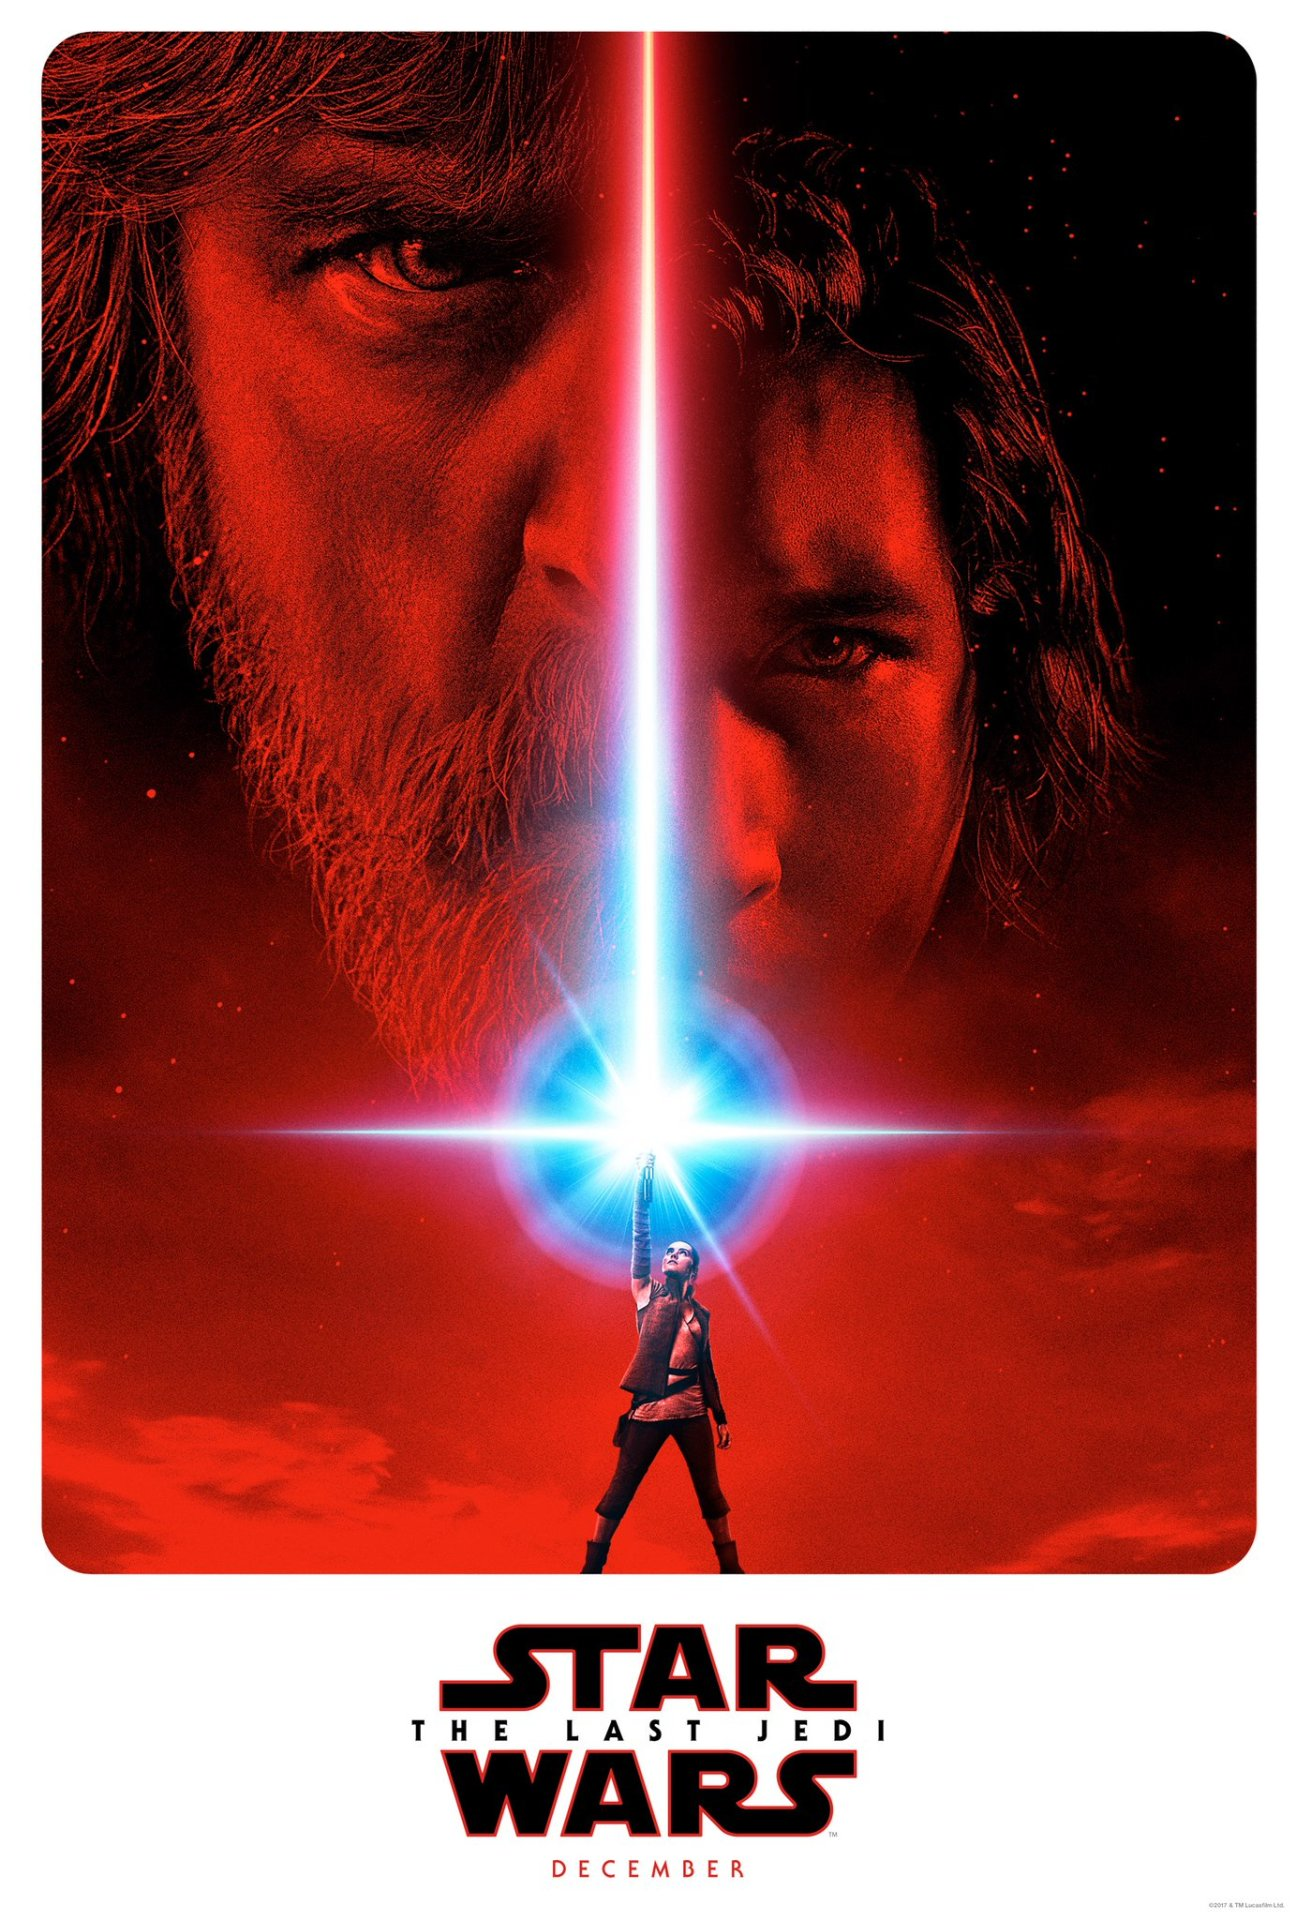 Star Wars: The Last Jedi Official Teaser and Poster